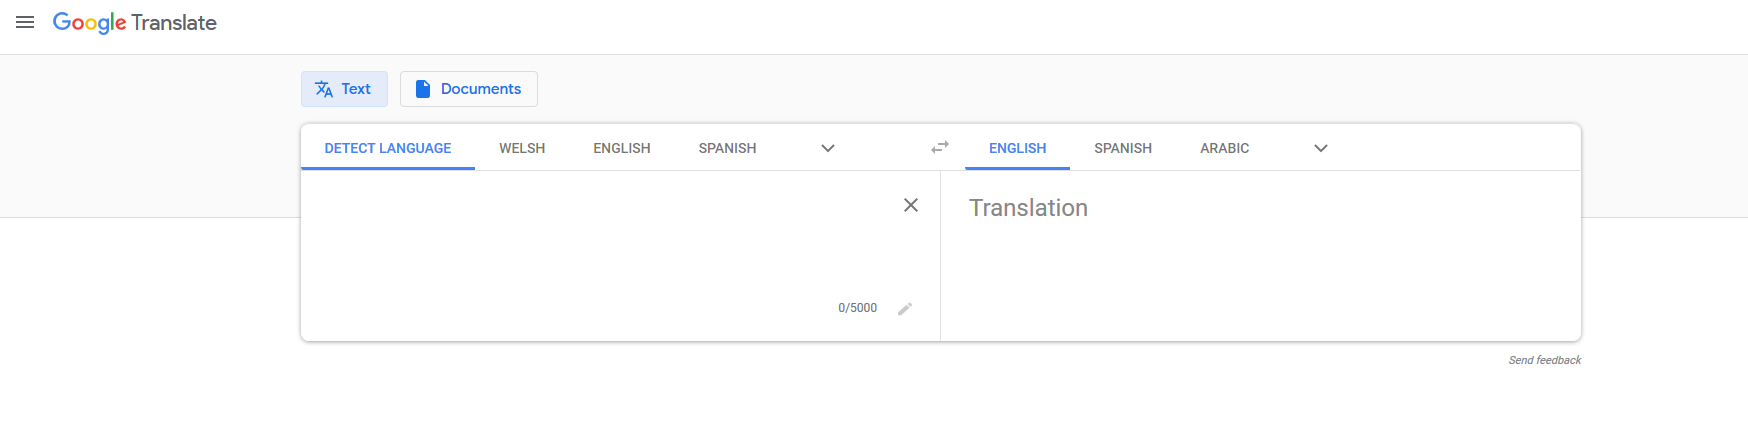 image of online machine translation when considering Machine translation and confidentiality